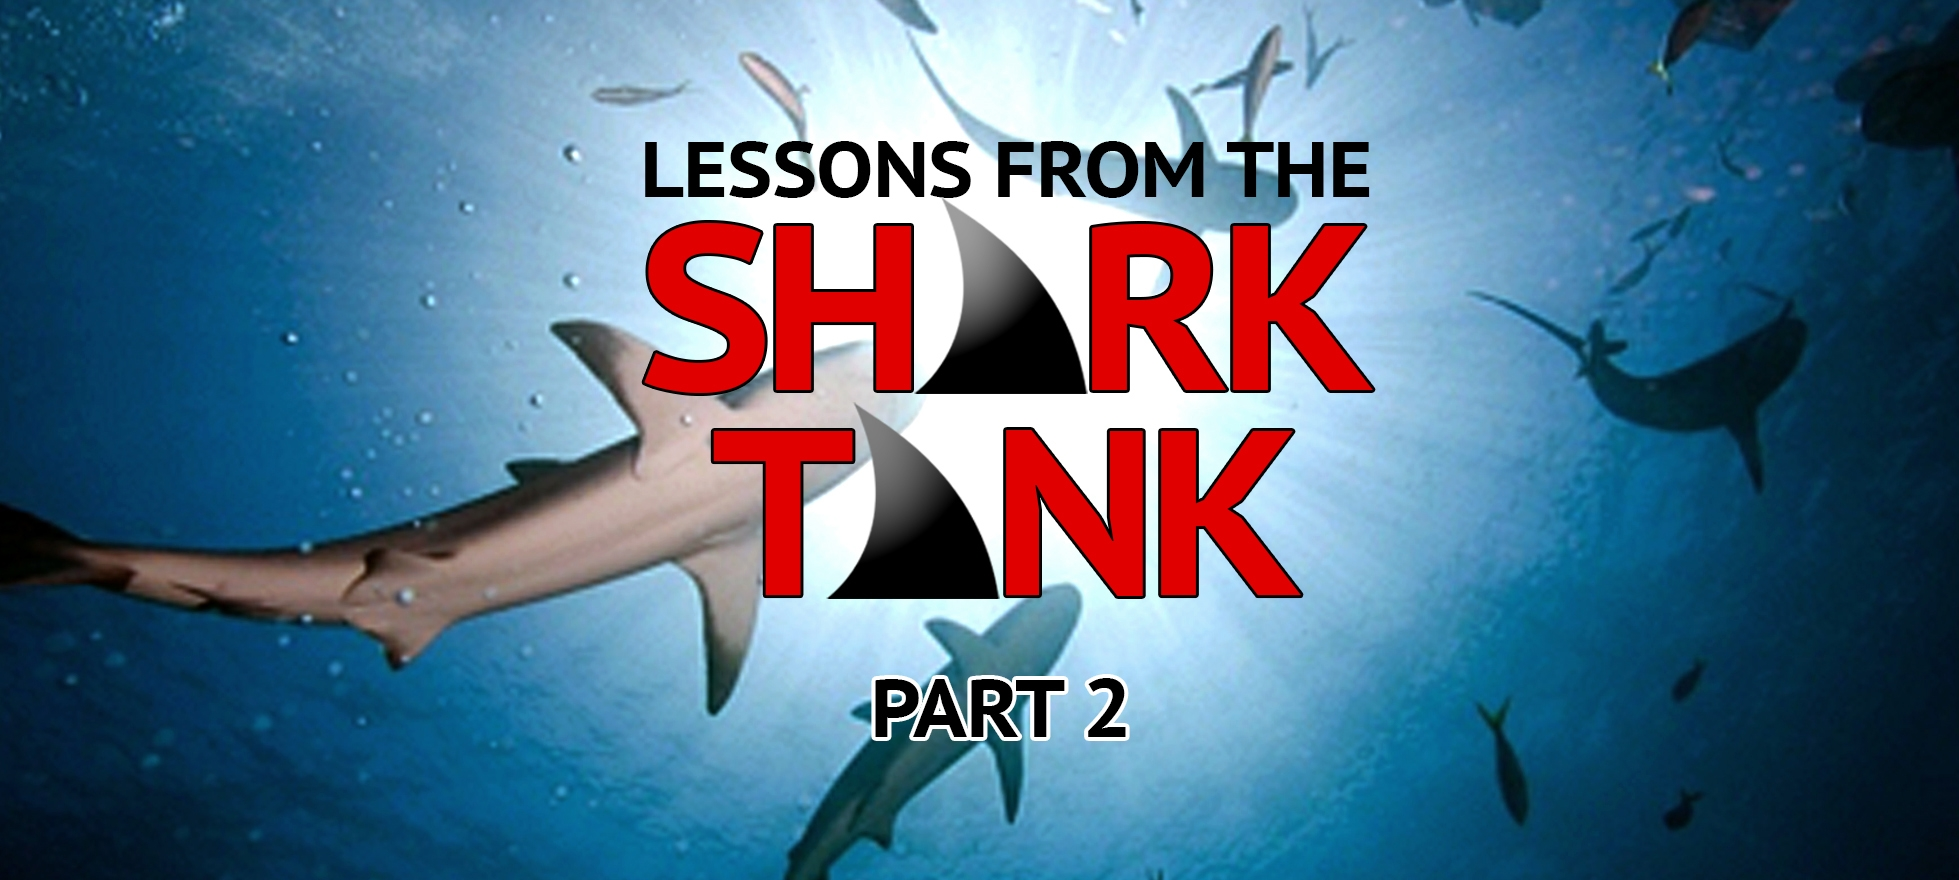 Lessons From the Shark Tank #2